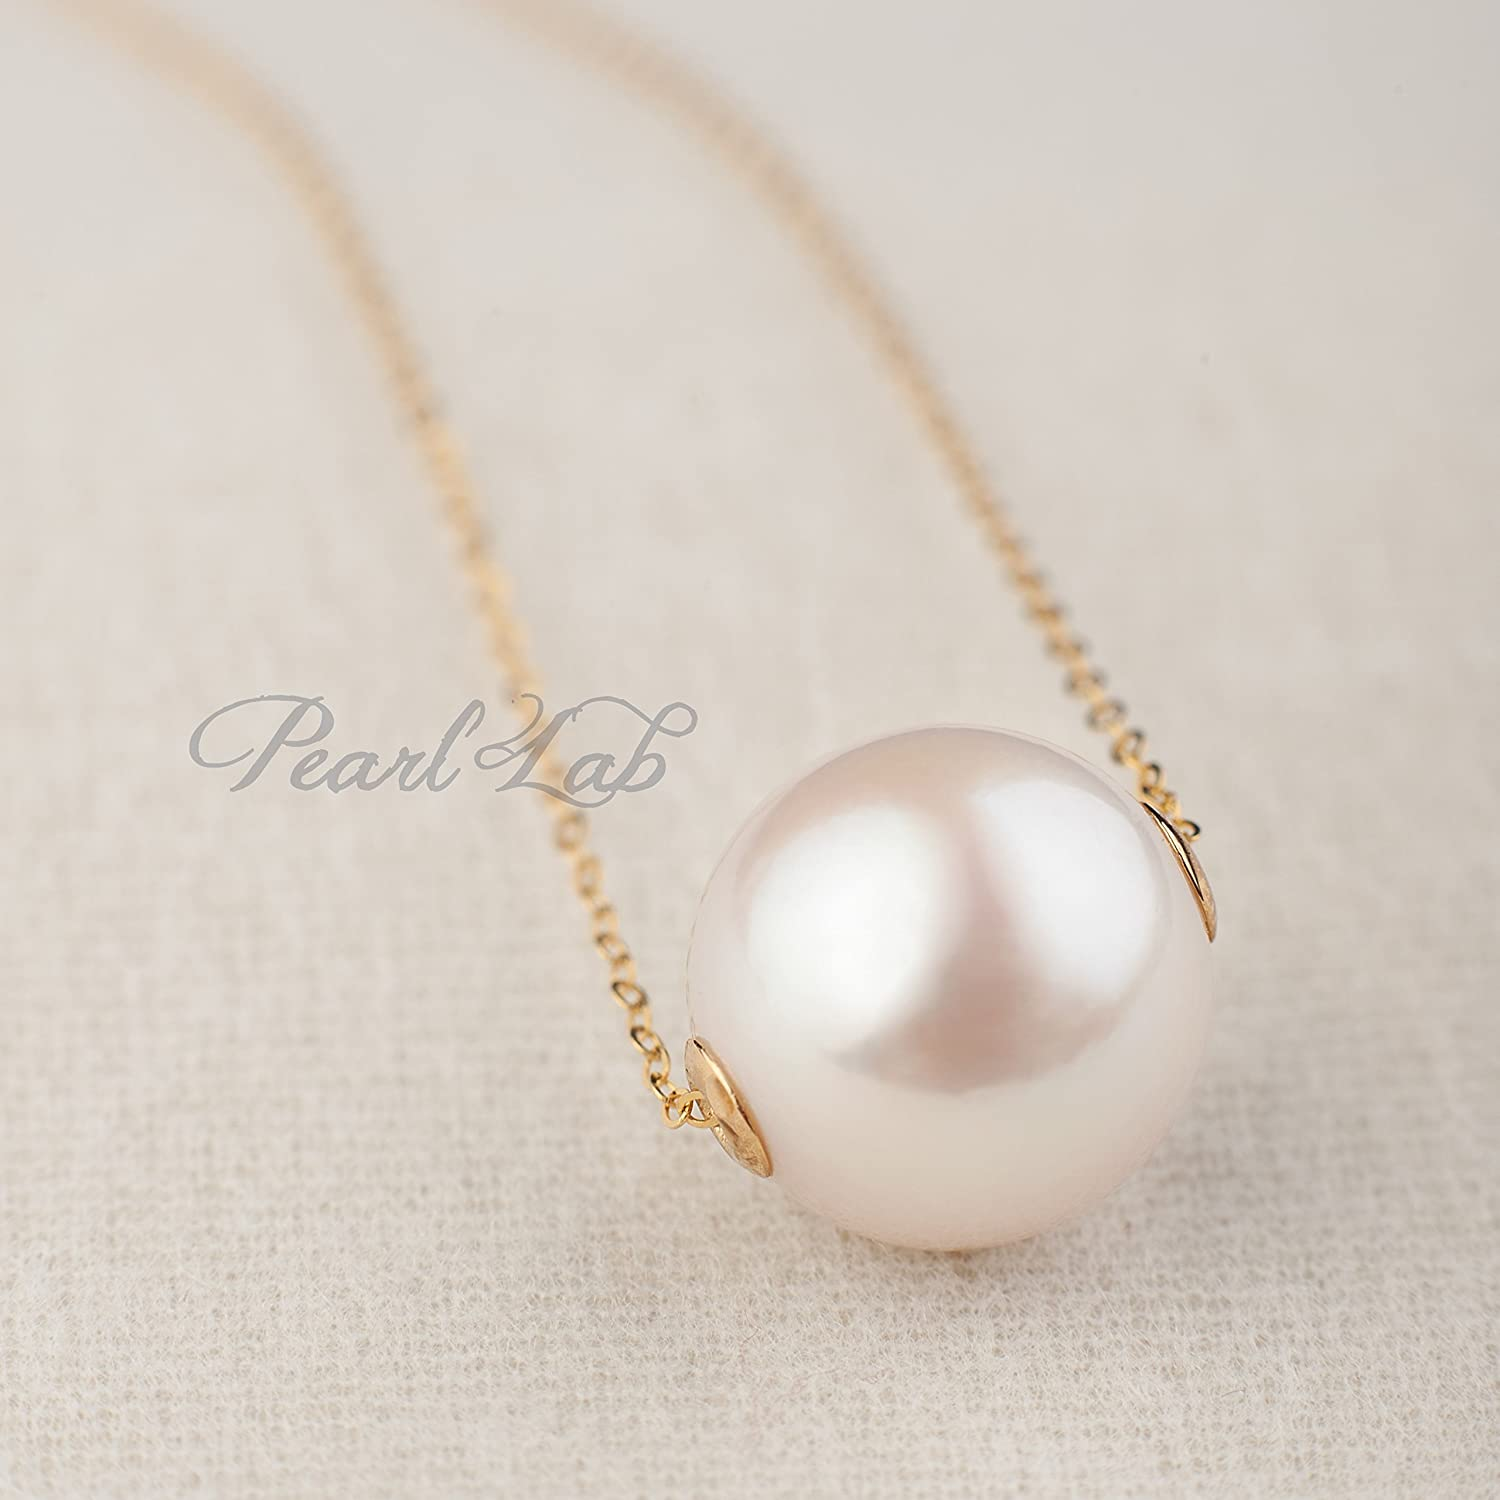 Single Pearl Necklace | Round White Edison Freshwater Pearl | Excellent Luster | G18K Solid Yellow Gold | Beaded Minimalist Everyday